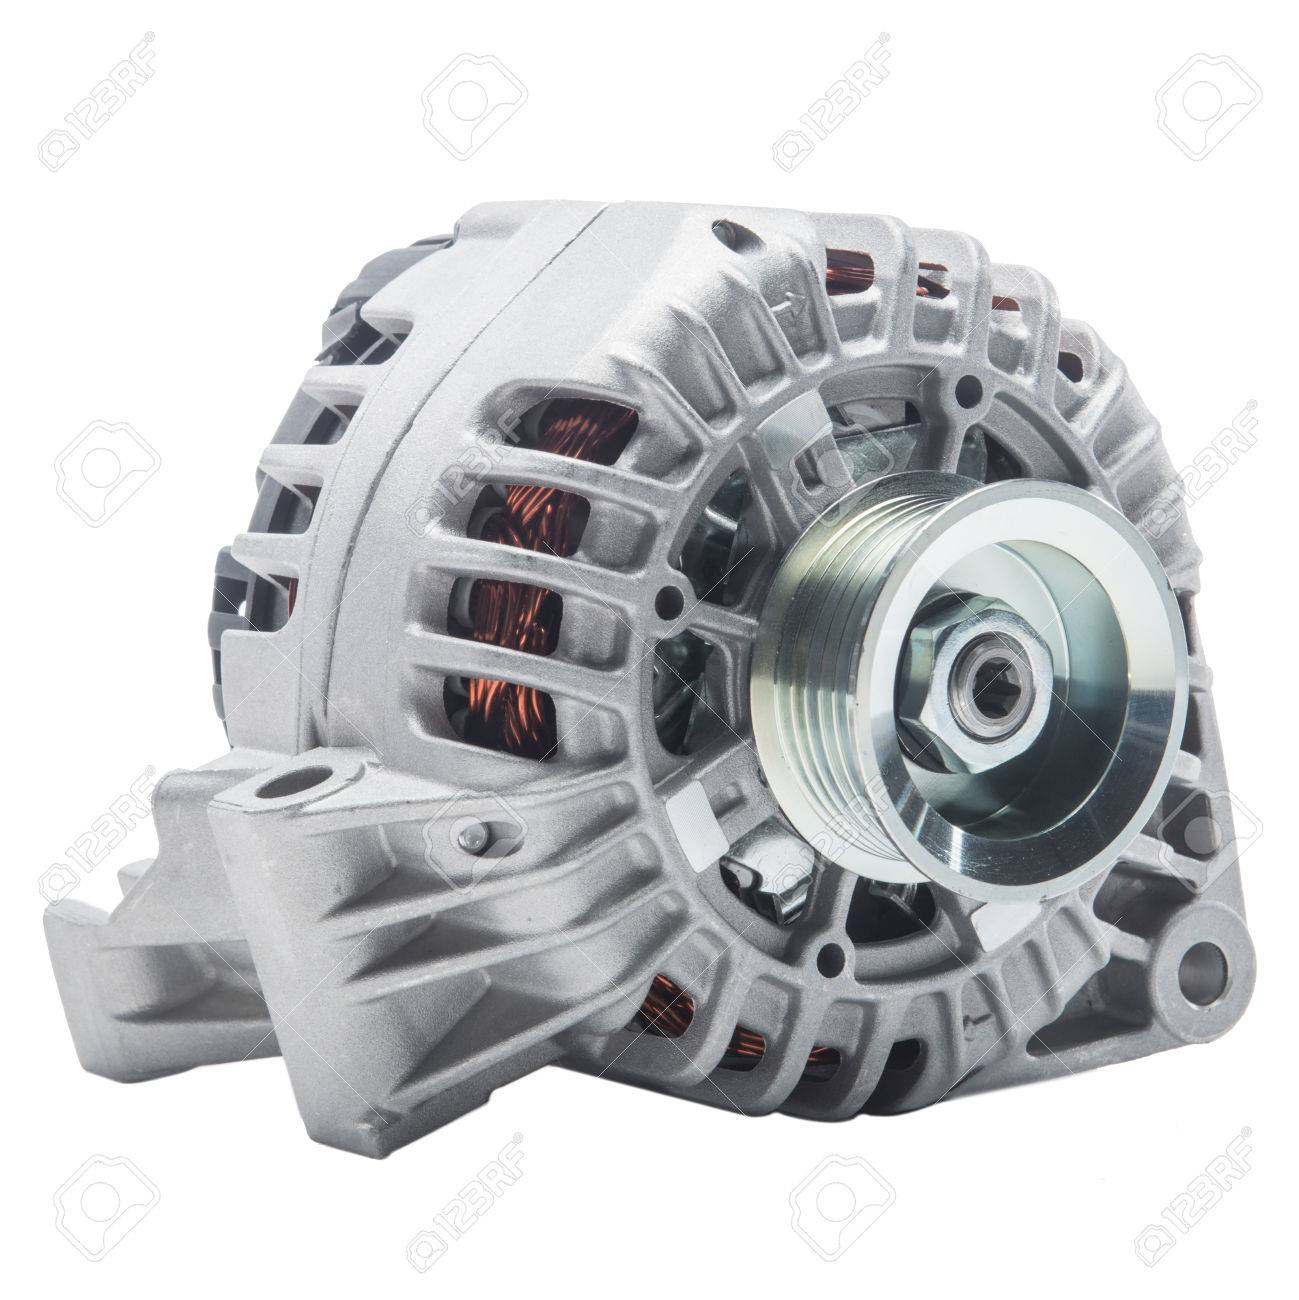 Power Generator Or Alternator Isolated On White Background. Car ...